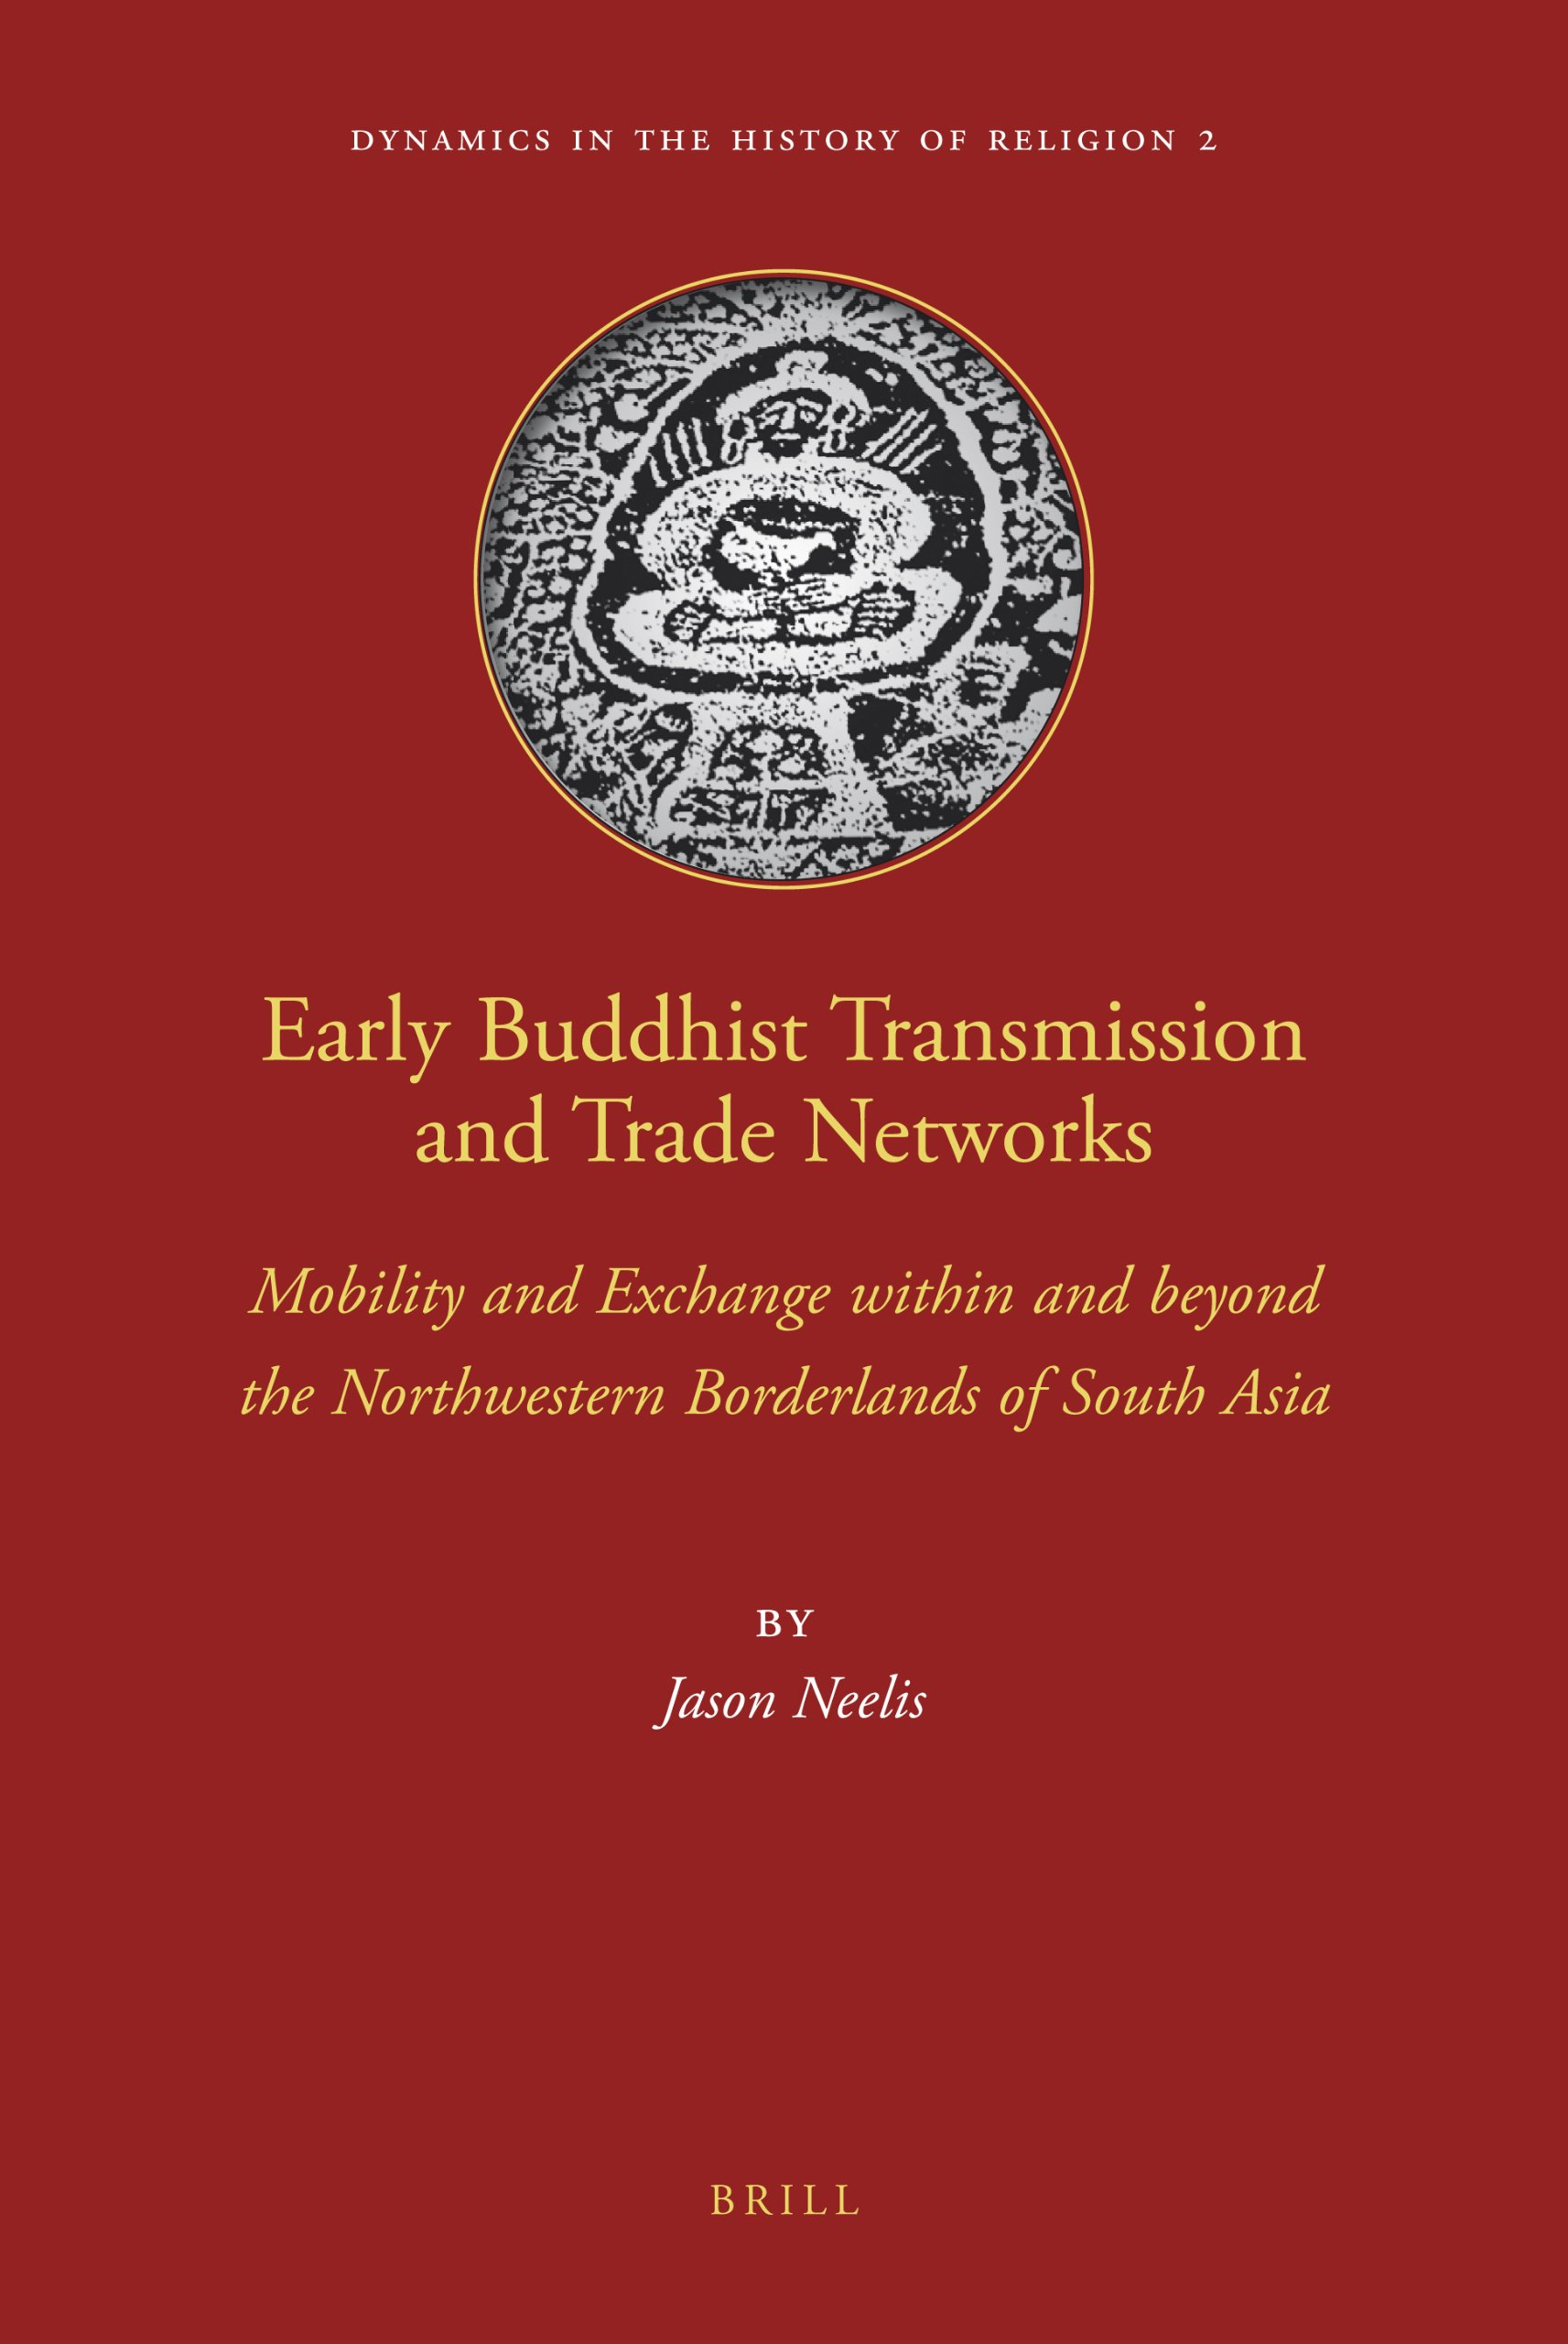 Download Early Buddhist Transmission and Trade Networks: Mobility and Exchange Within and Beyond the Northwestern Borderlands of South Asia (Dynamics in the History of Religions) PDF